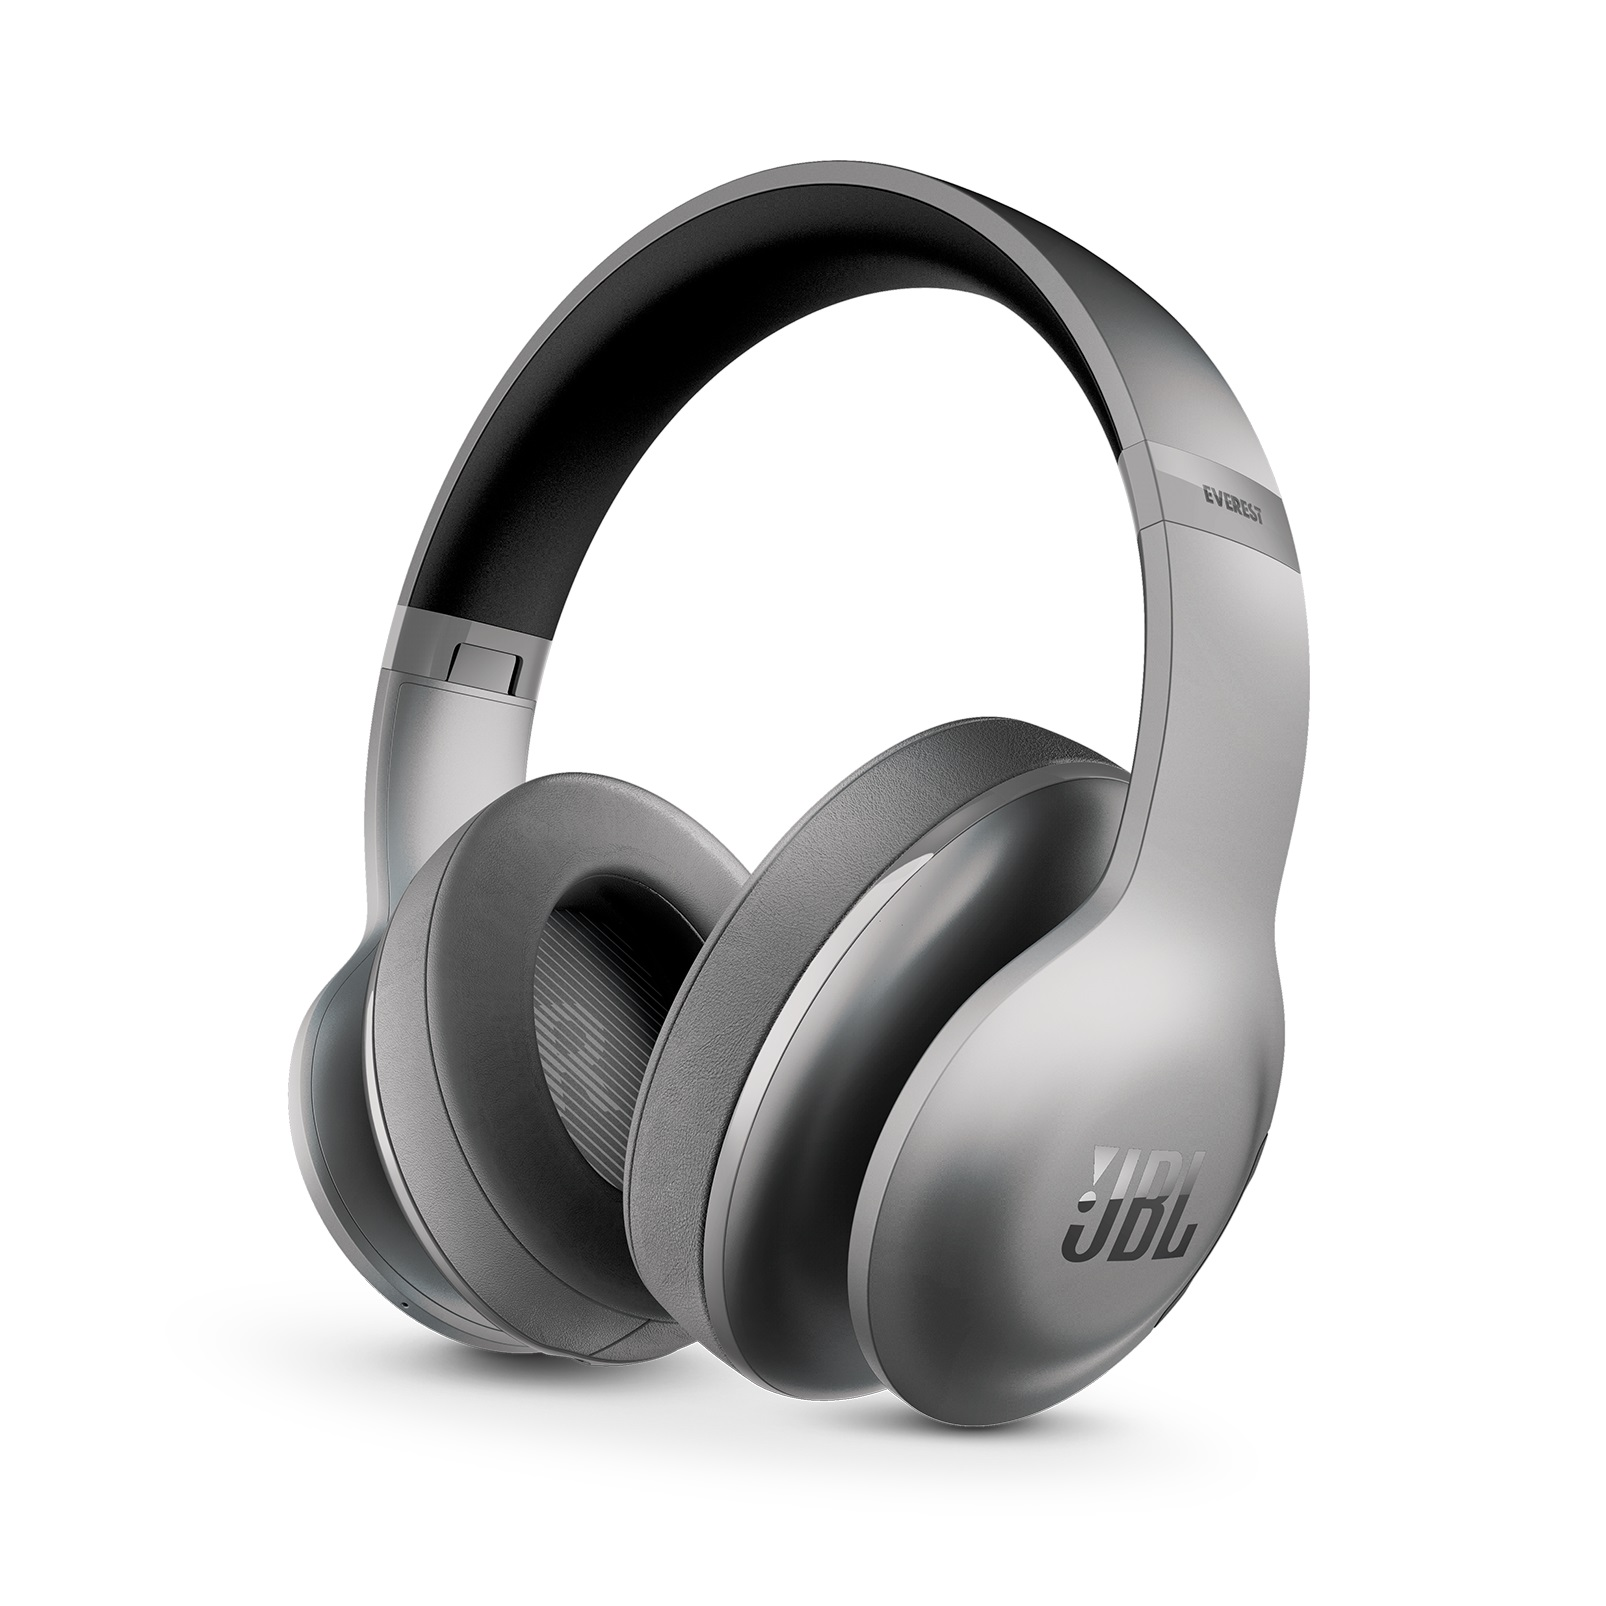 Jbl bluetooth earbuds inspire 700 - Marshall's Headphones Are Handsome as Hell, Big or Small